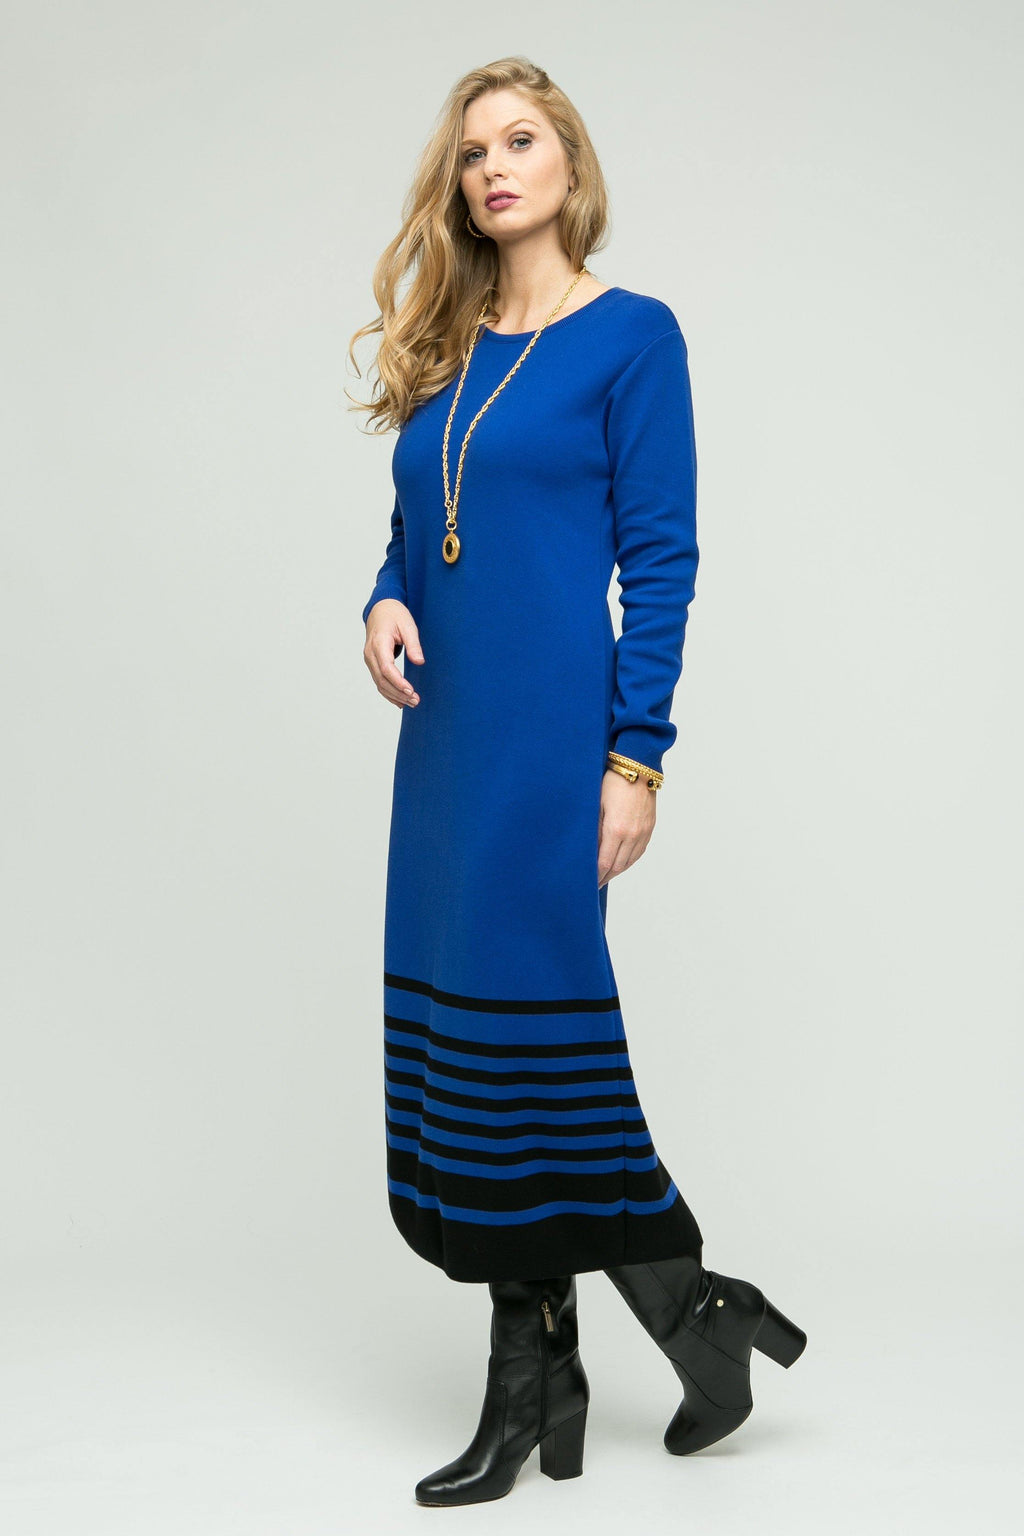 Long Sleeve Dress with Bottom Stripe Detail - New Orleans Knitwear - Dresses - Casual